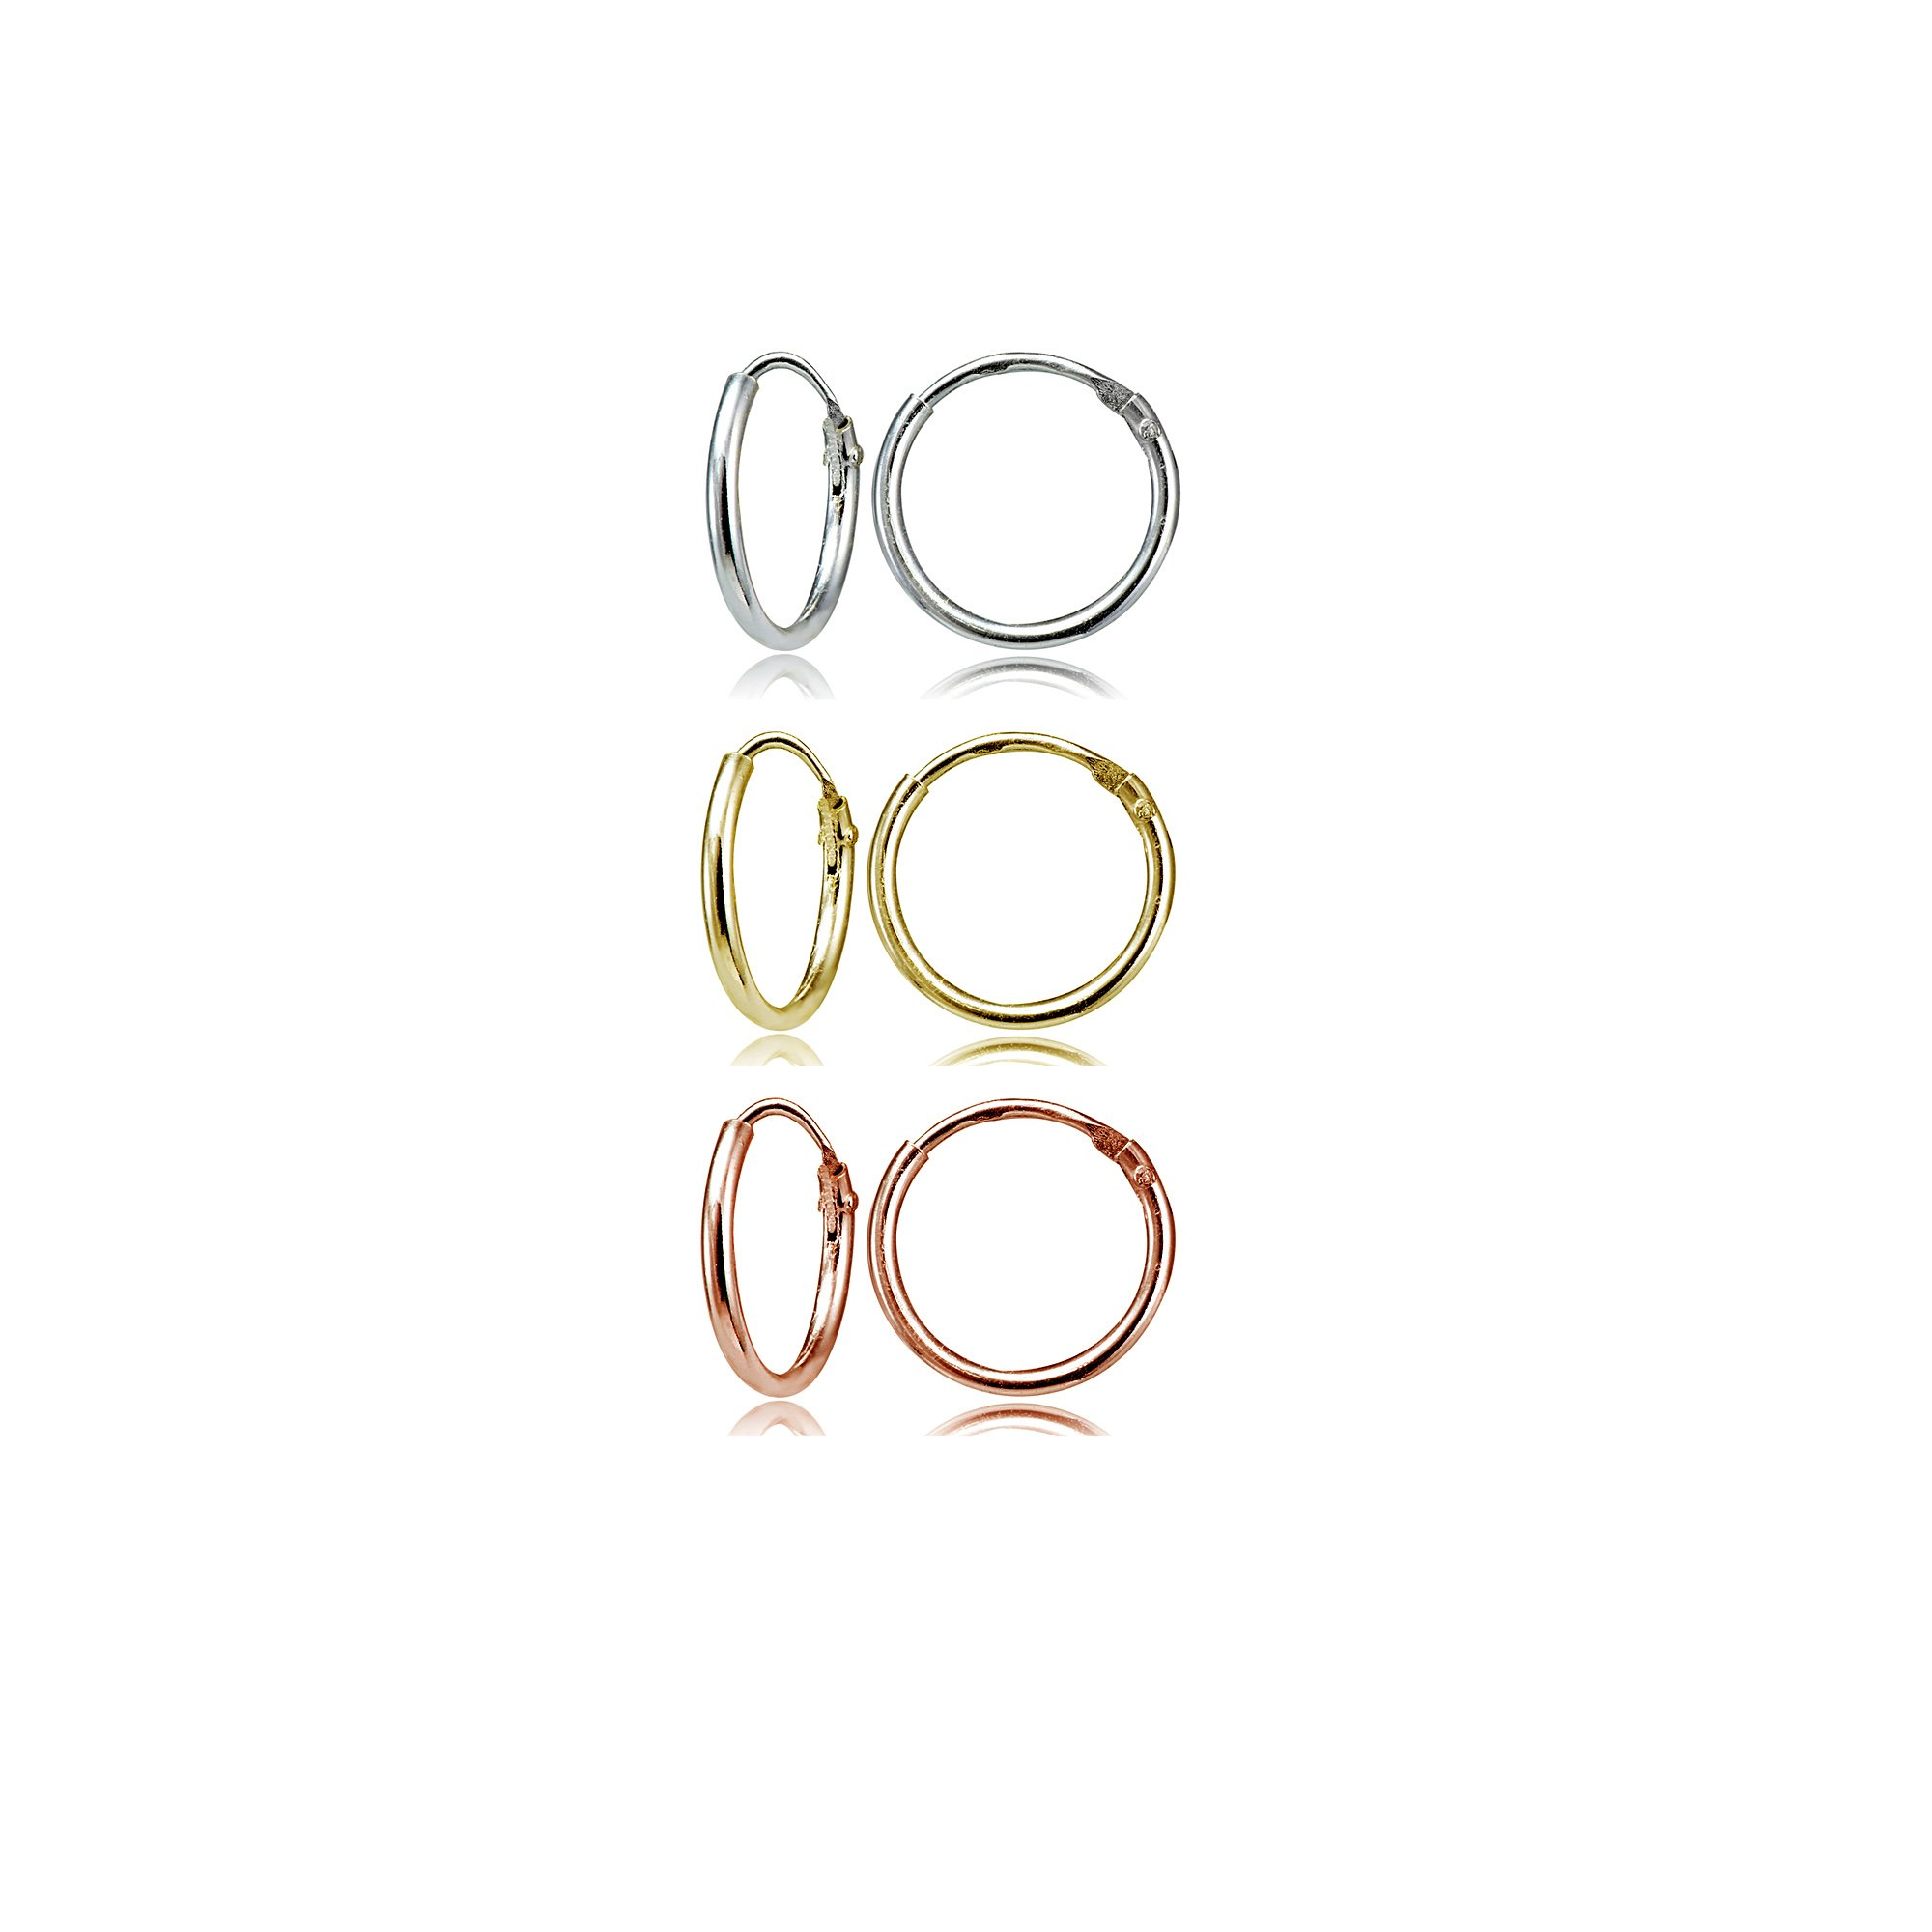 Sterling Silver Tri-Color Small Endless 10mm Round Unisex Hoop Earrings, Set of 3 Pairs